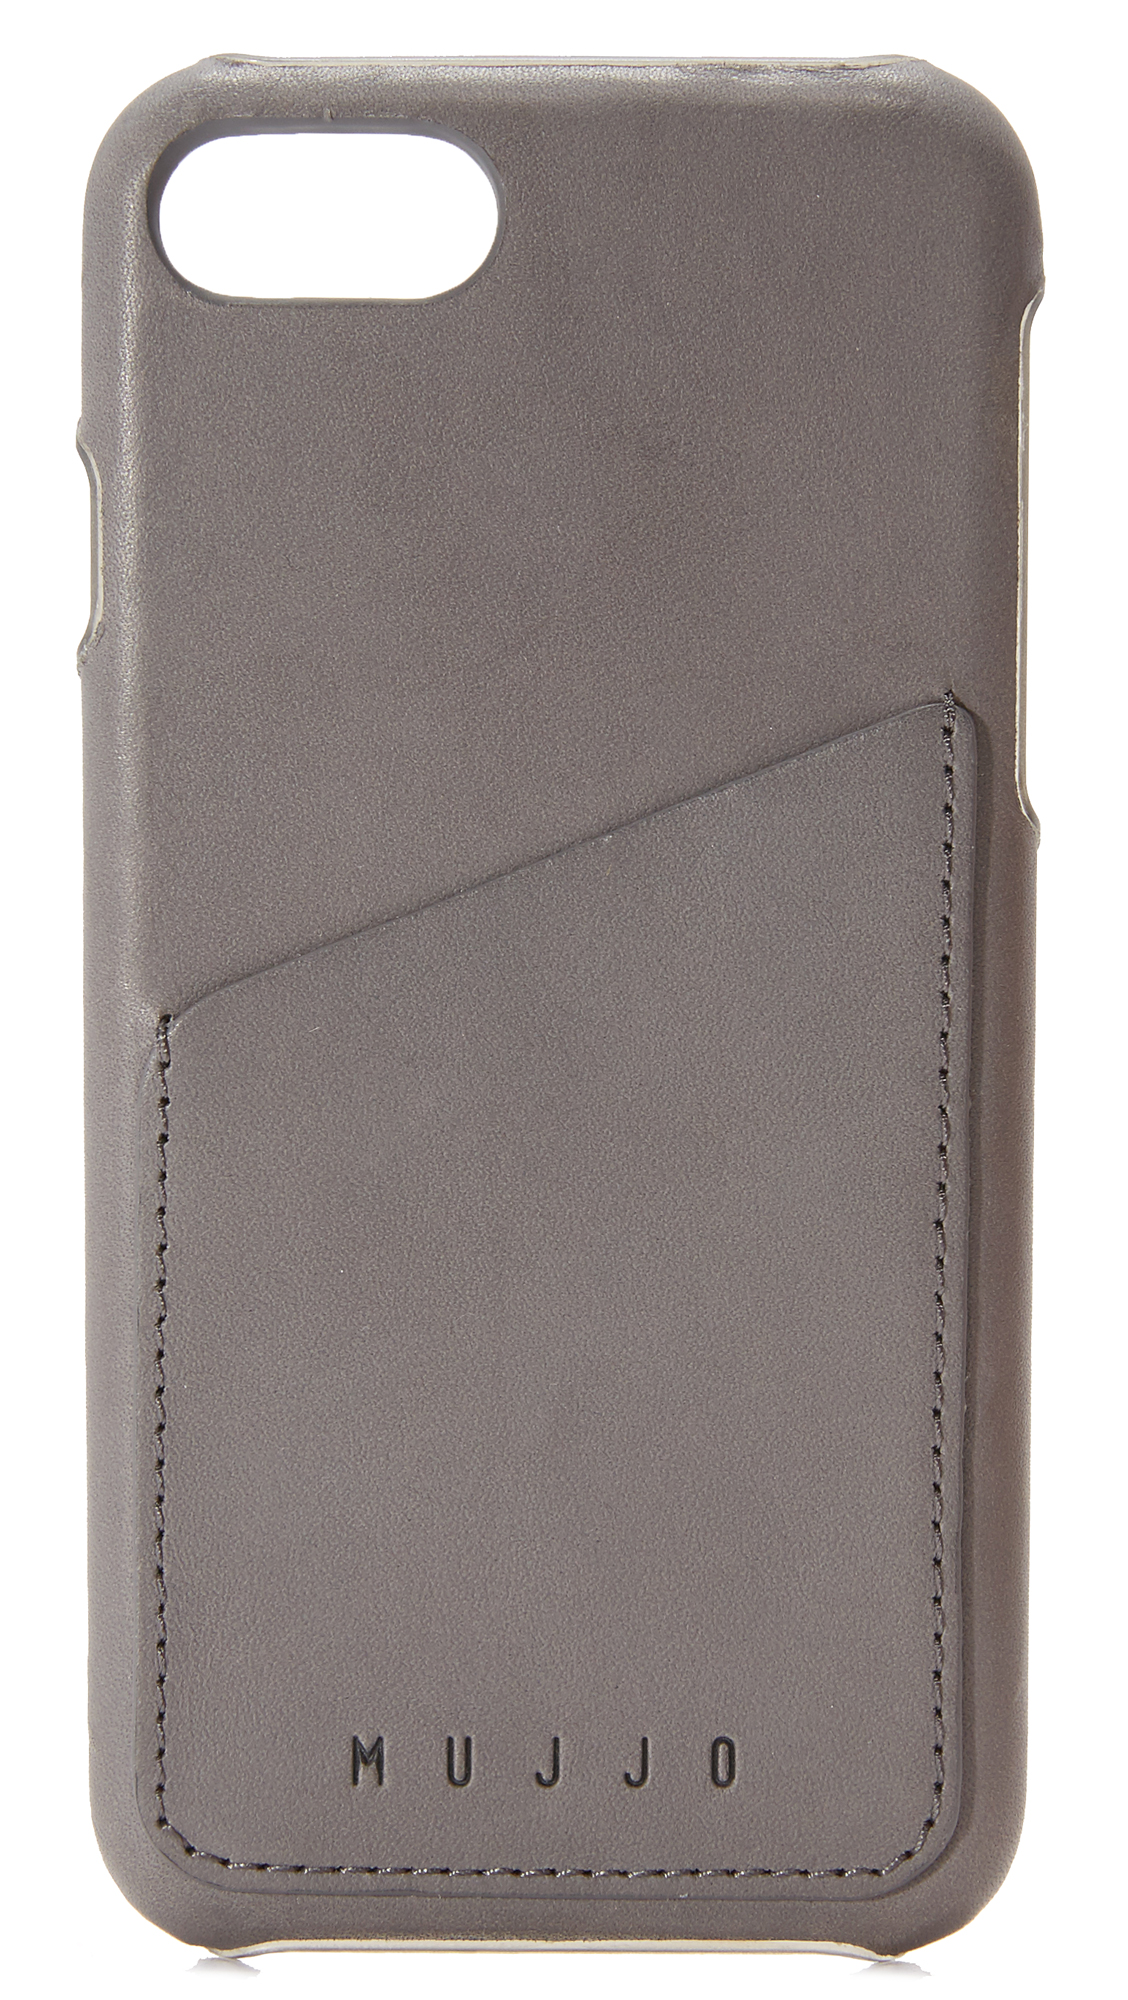 Mujjo Leather Wallet Iphone 7 Case - Grey at Shopbop